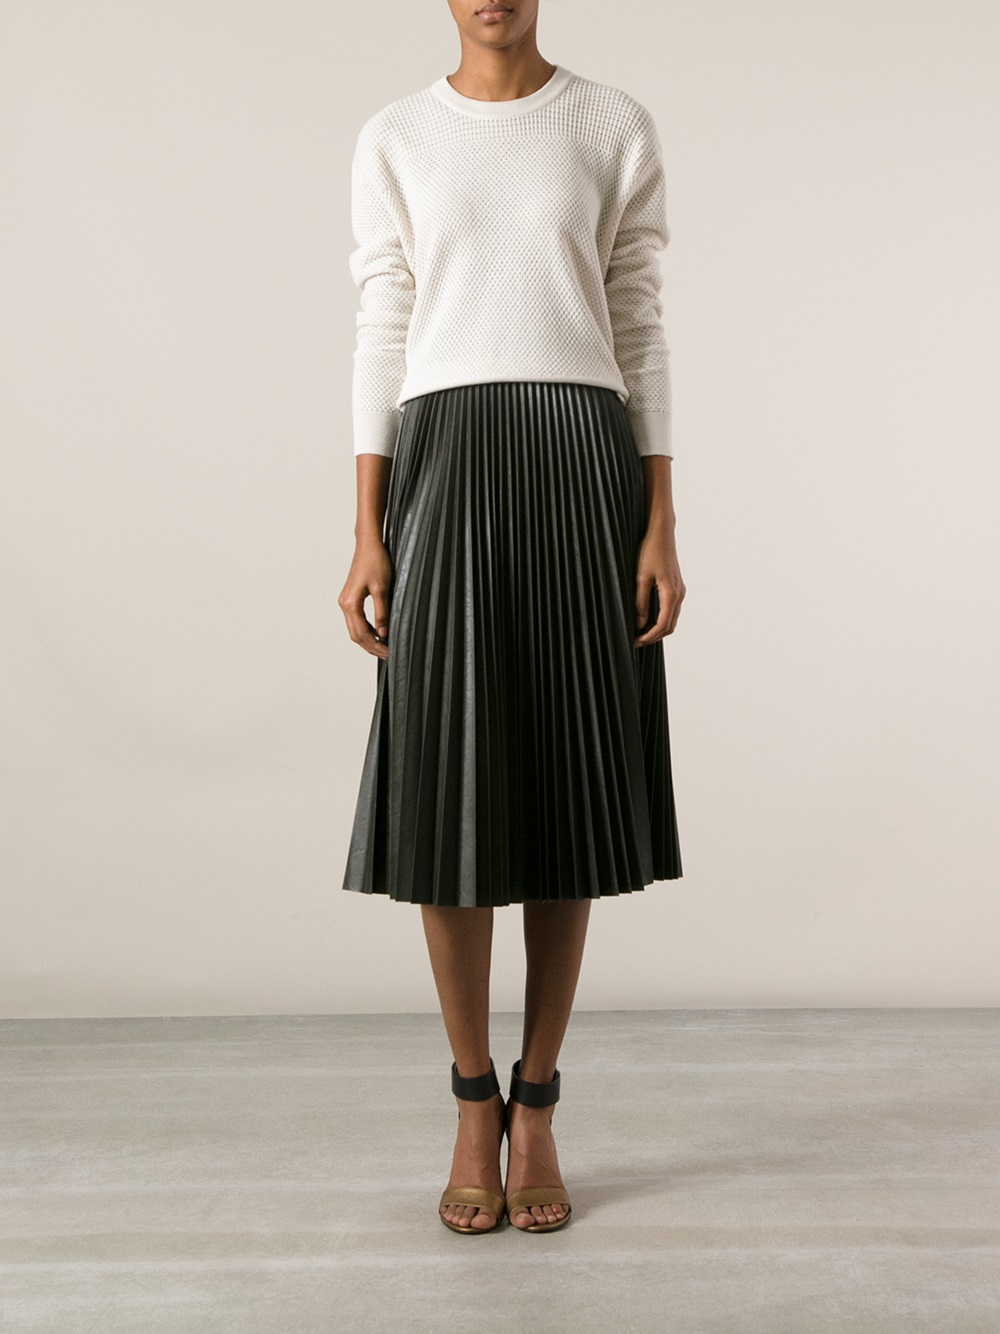 Amen Pleated Skirt in Green | Lyst